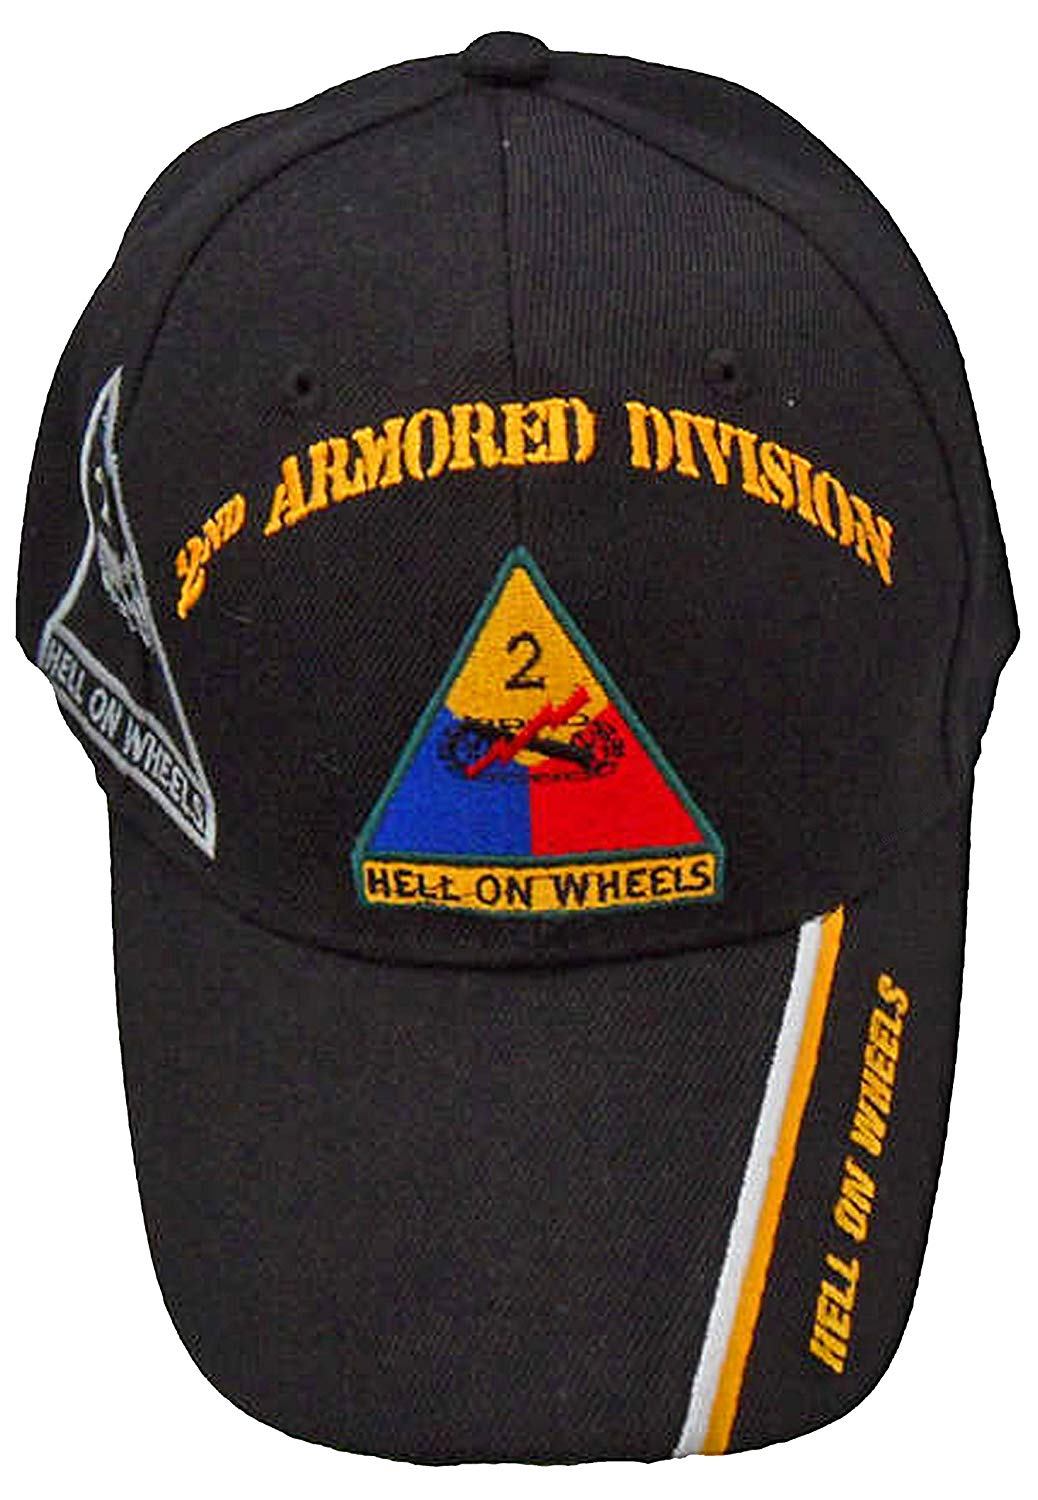 Buy Caps and Hats 2nd Armored Division Army Cap Hell On Wheels Baseball Hat Second